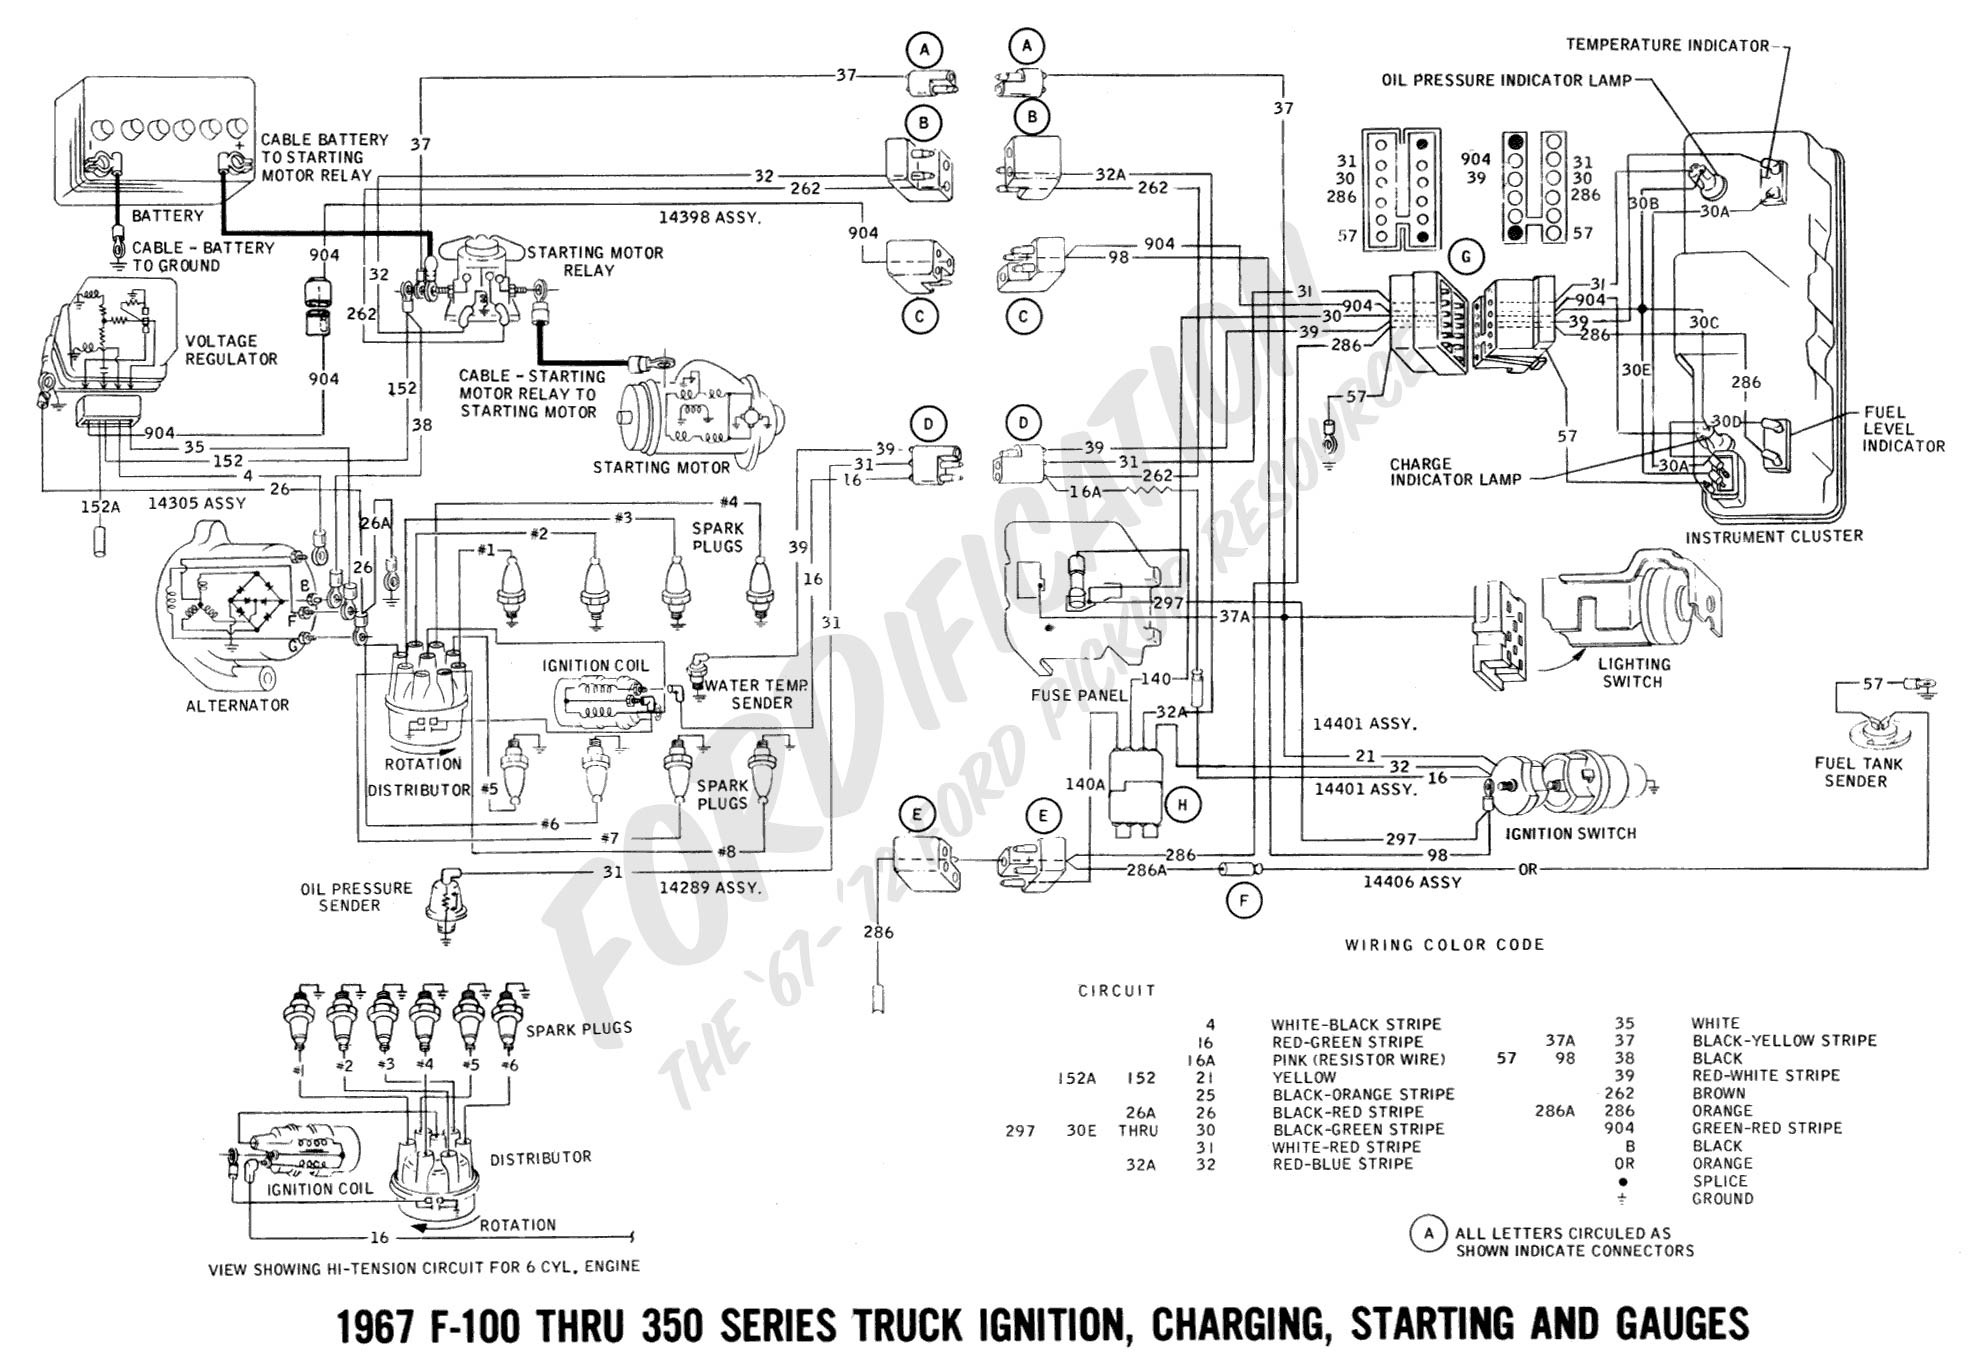 2007 ford Explorer Wiring Diagram ford Truck Technical Drawings and Schematics Section H Wiring Of 2007 ford Explorer Wiring Diagram